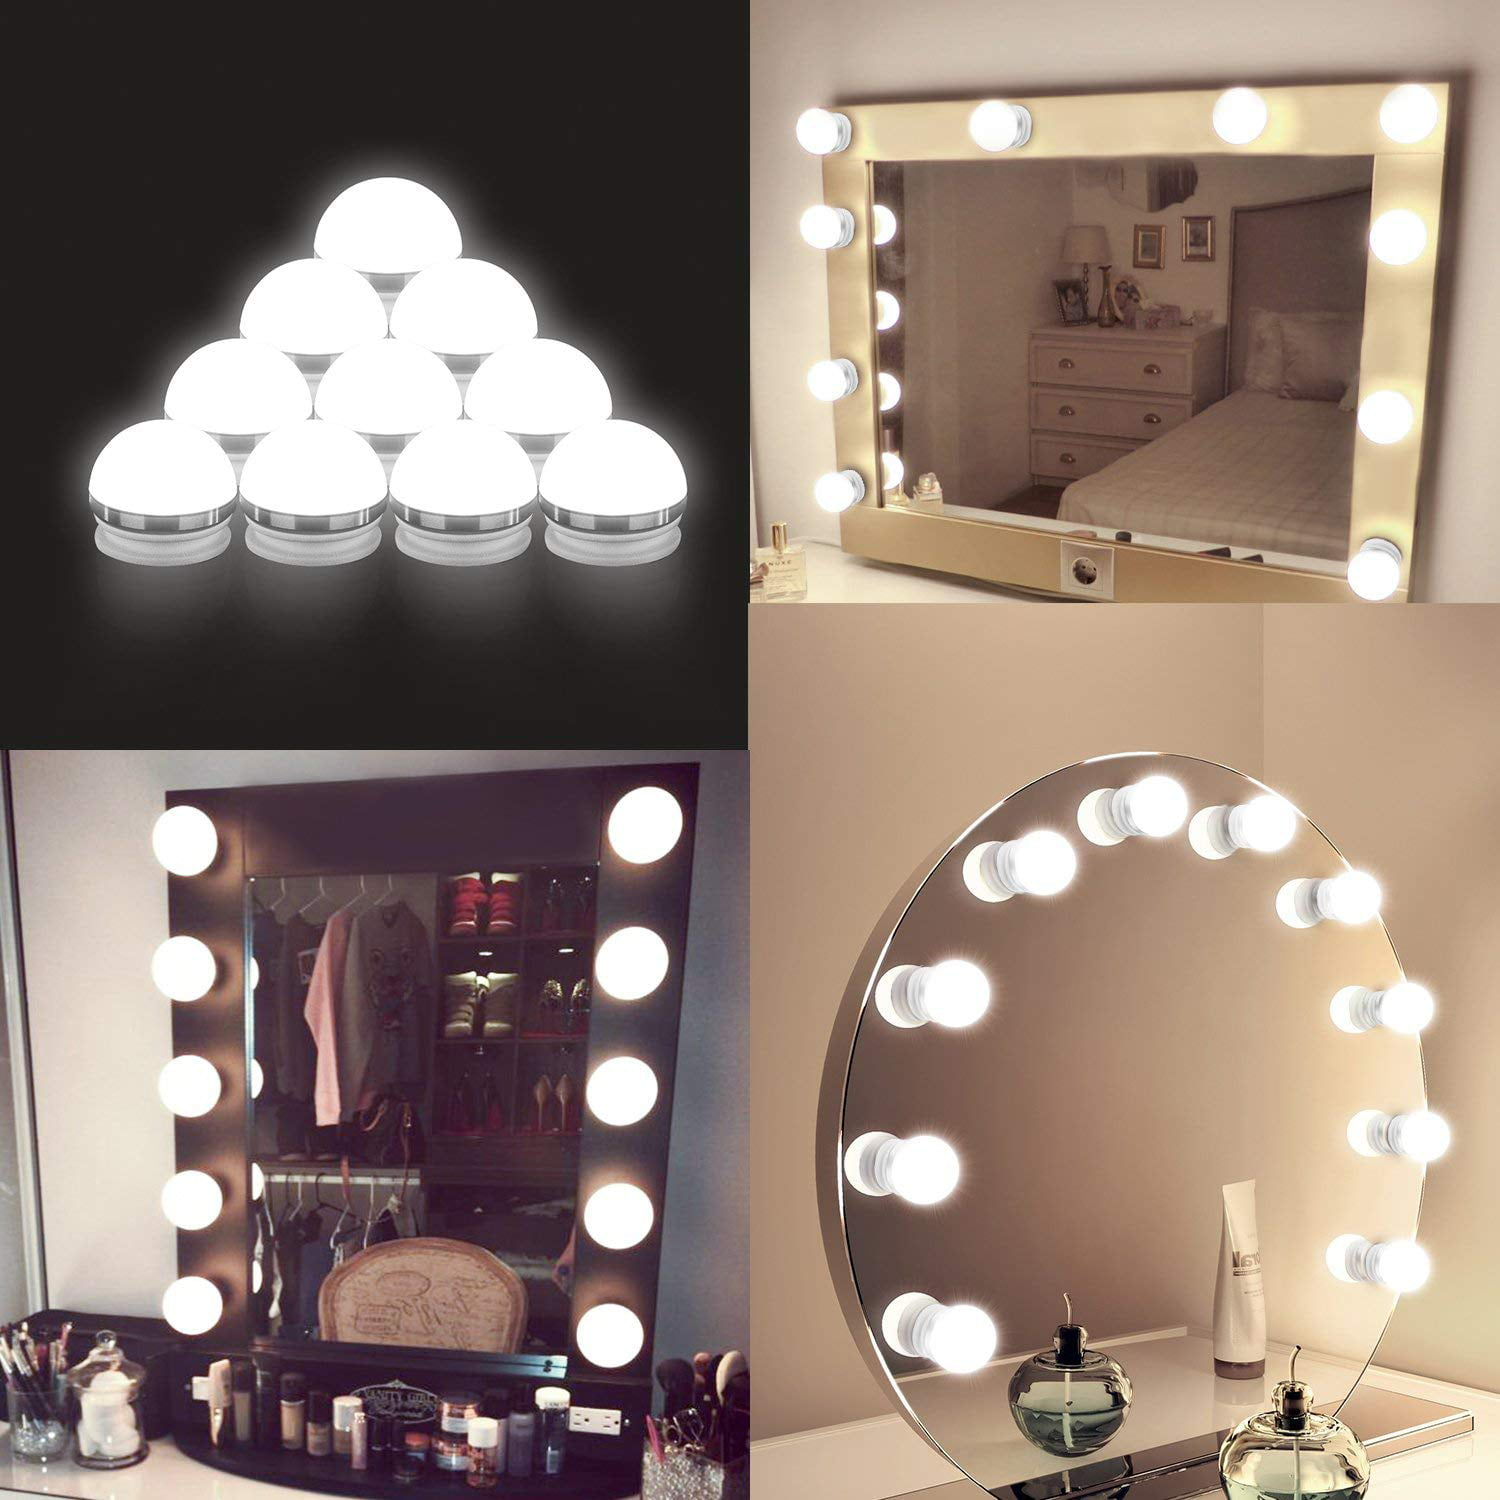 100 Pcs Coolmade Vanity Lights Kit Hollywood Style Makeup Light Bulbs With Stickers Attached To Bathroom Wall Or Dressing Table Mirrors With Dimmable Switch And Power Plug Daylight Mirror Included Walmart Com